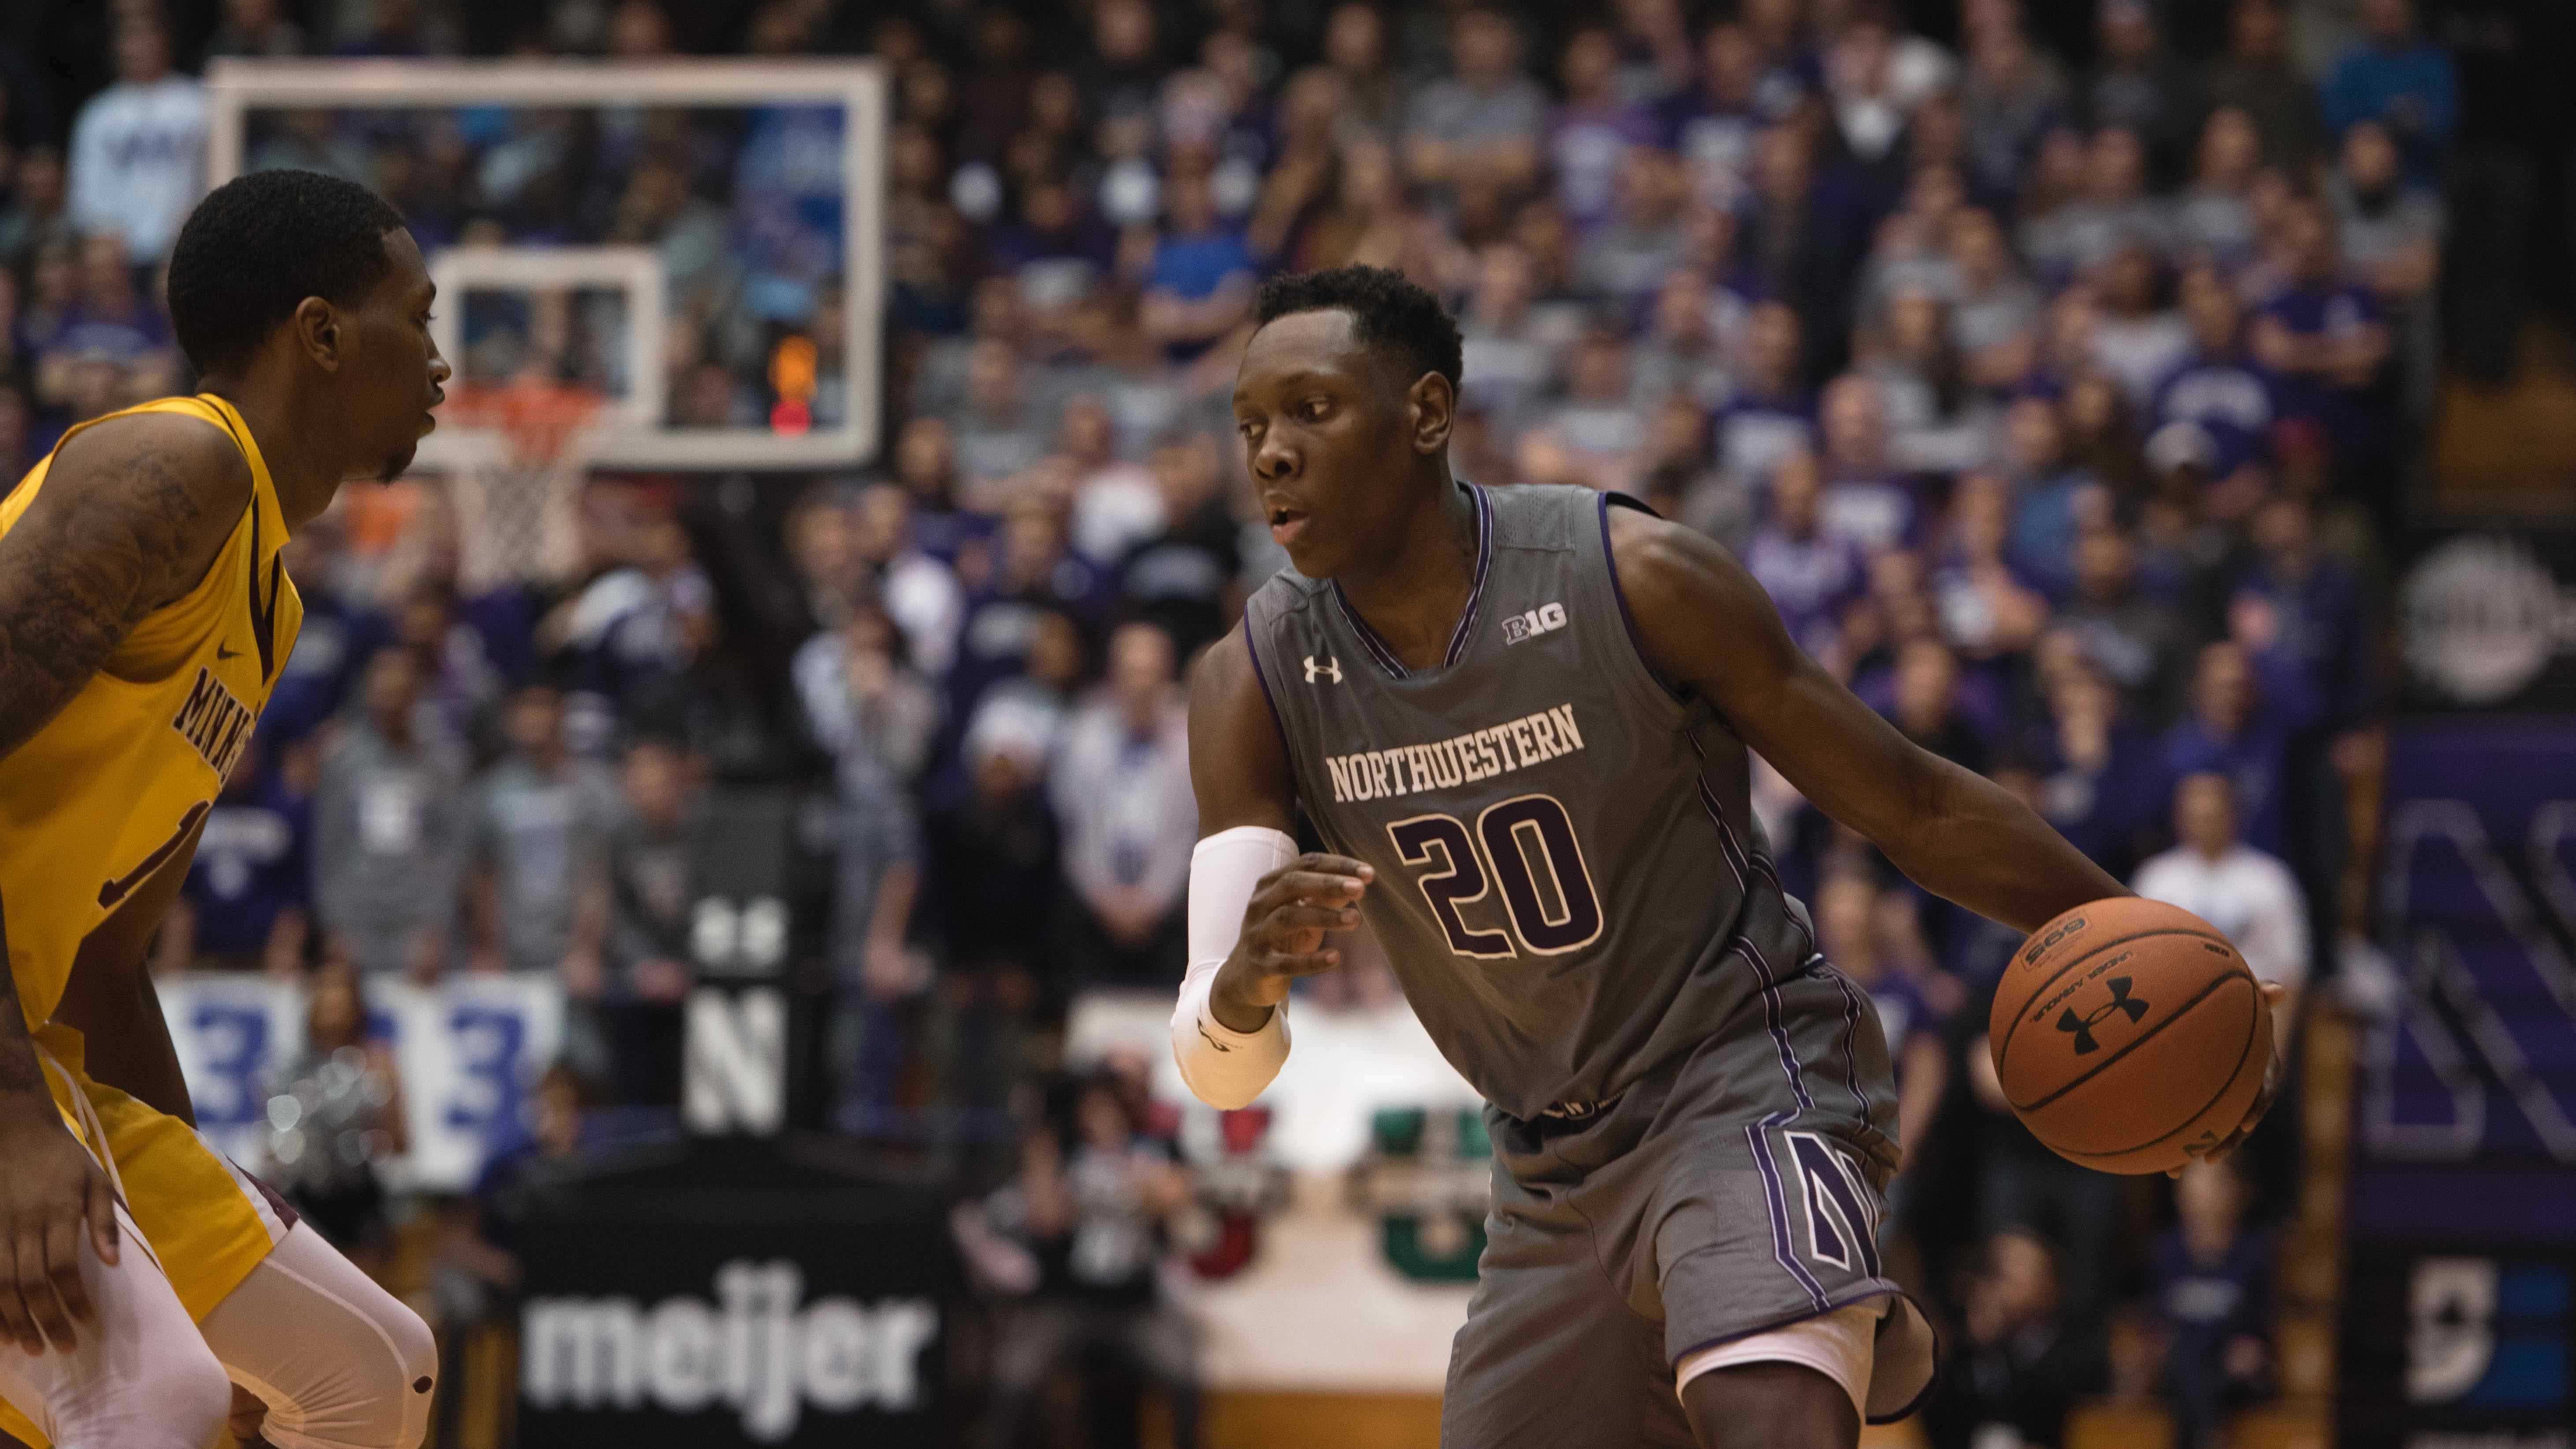 Scottie Lindsey dribbles. The junior guard emerged as one of Northwestern's leaders this season.